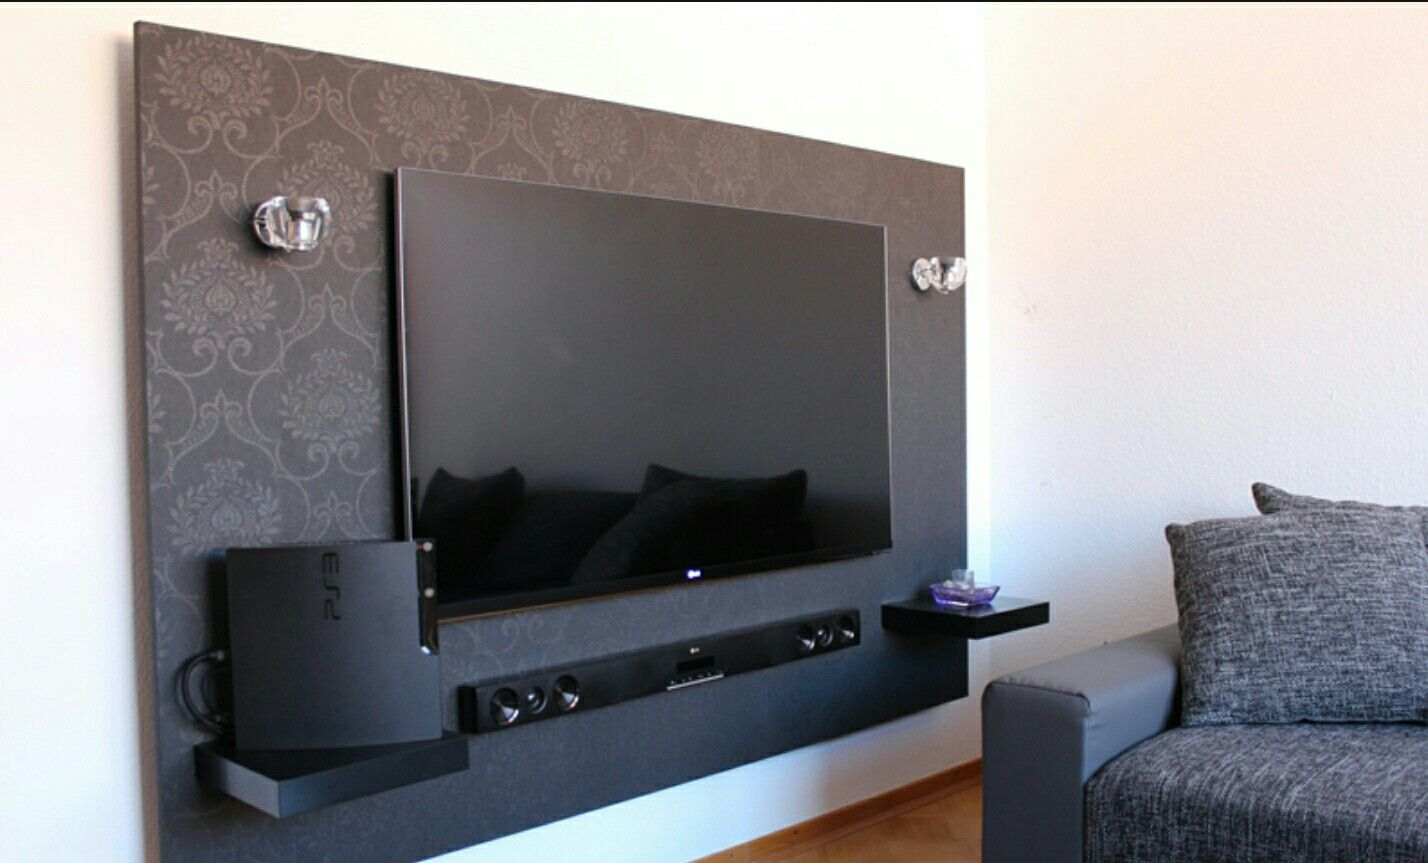 pin von katja soller auf tv wand ideen pinterest wohnzimmer wand ideen und tv wand ideen. Black Bedroom Furniture Sets. Home Design Ideas